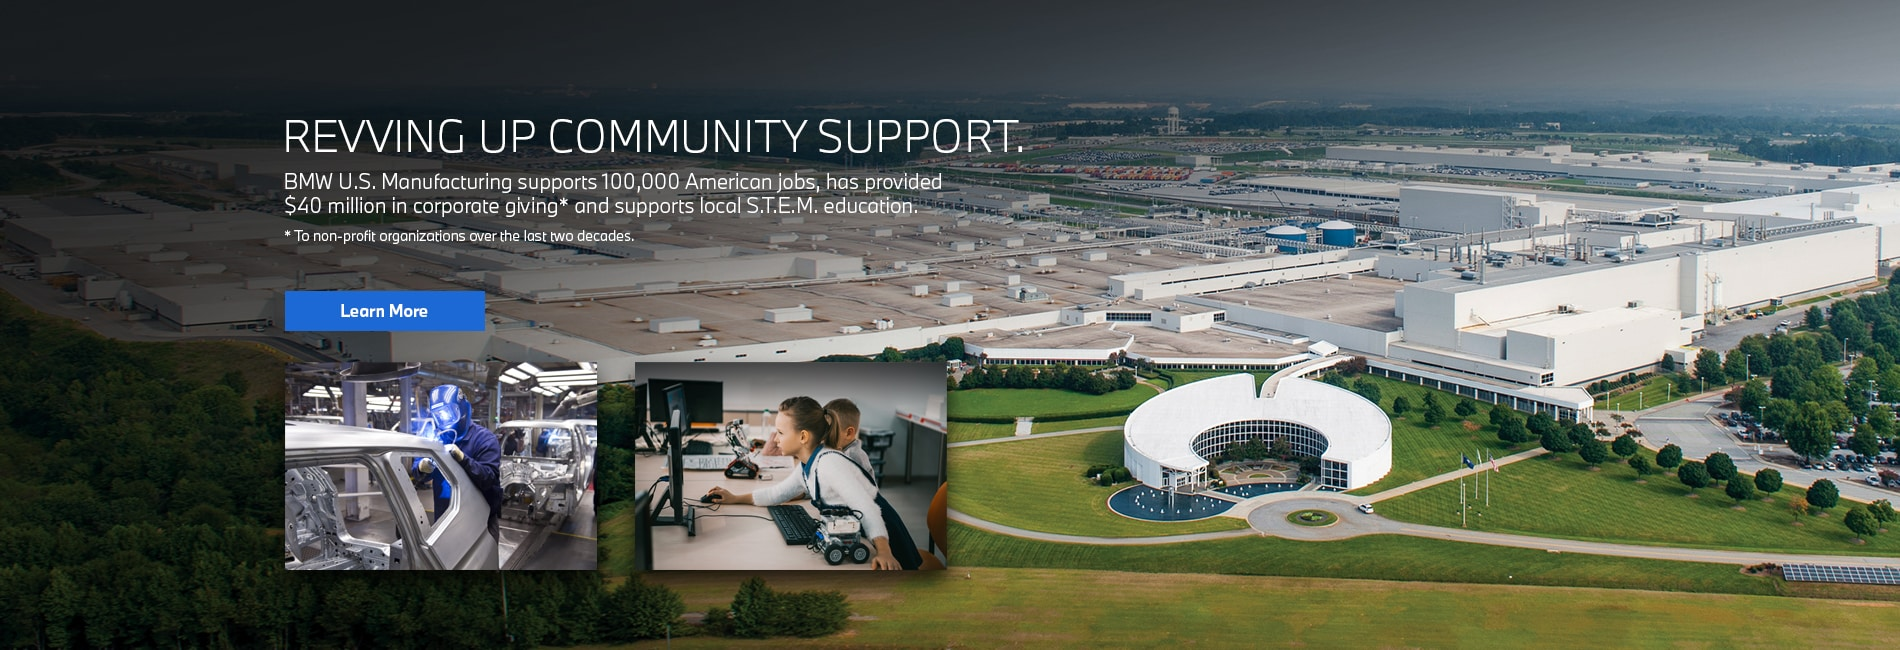 BMW Community Support